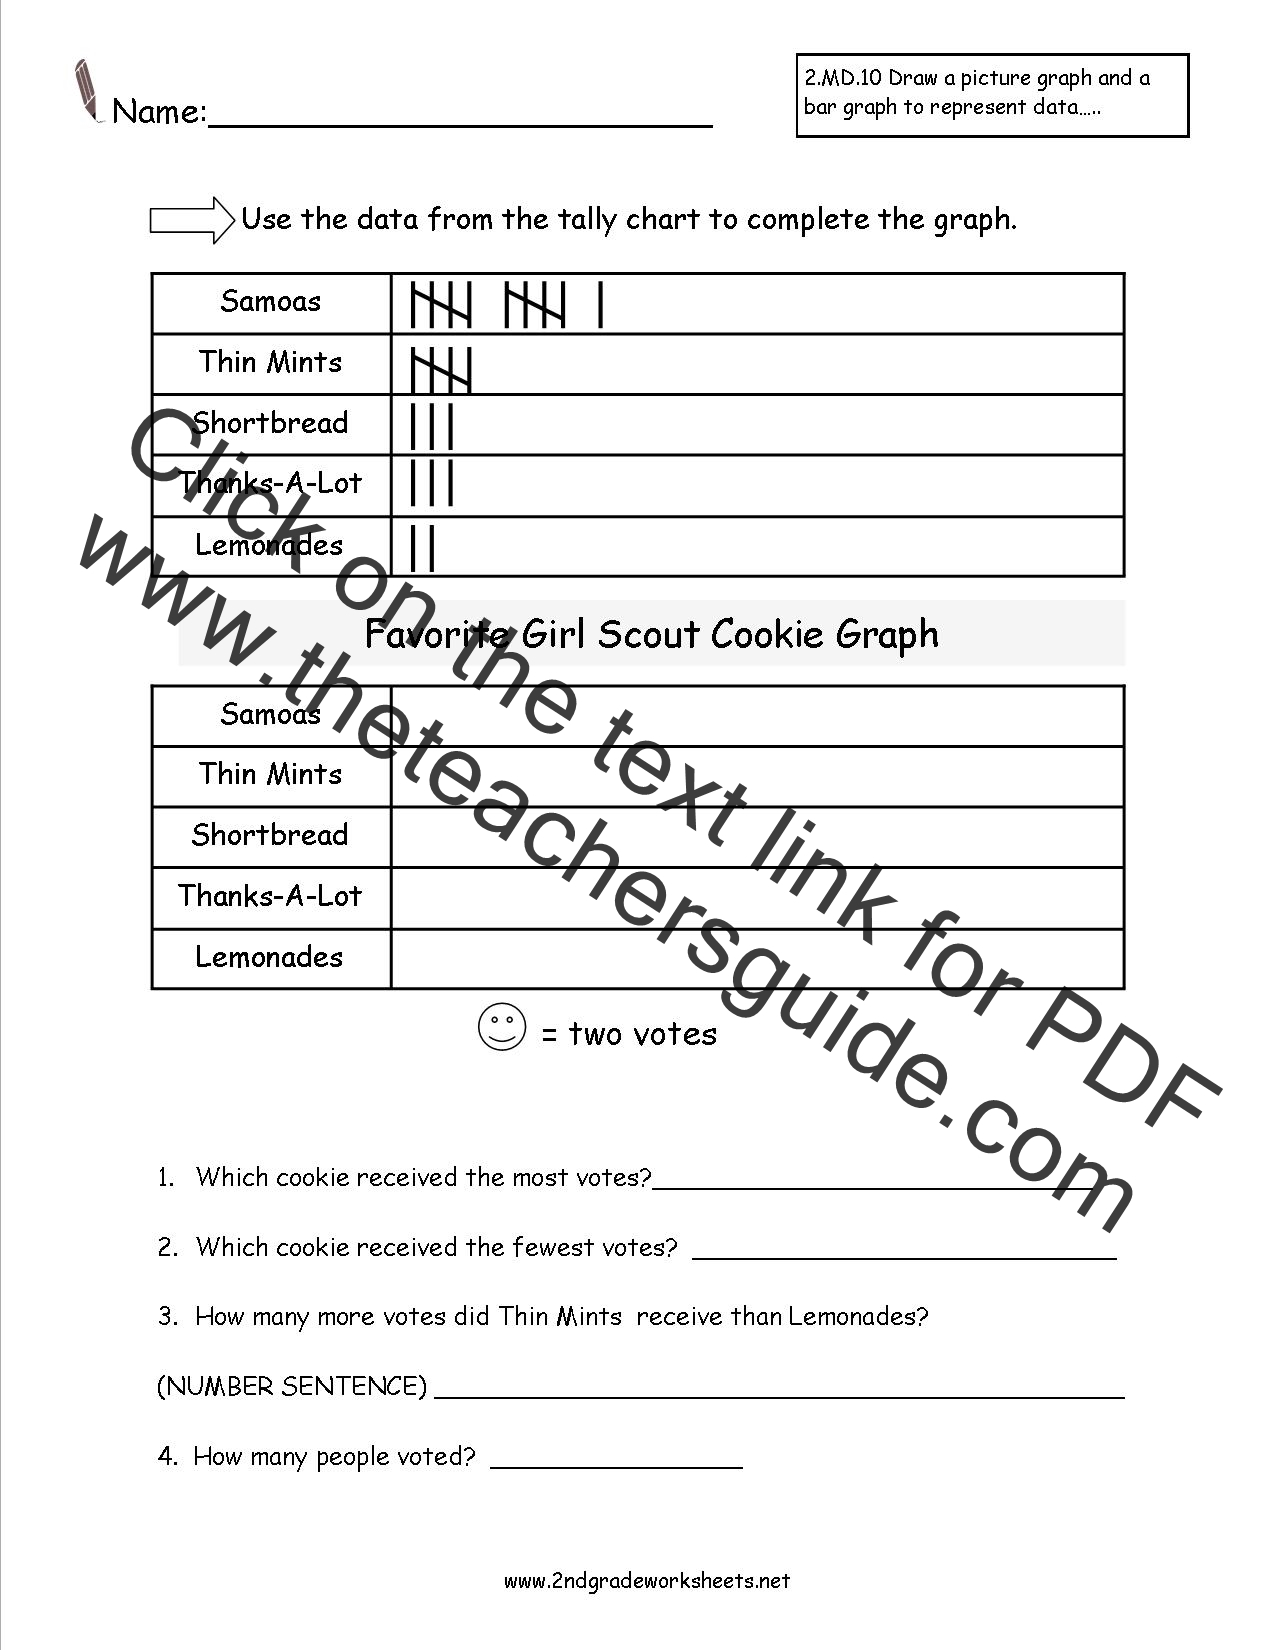 Worksheet Pictograph Worksheets second grade reading and creating pictograph worksheets favorite girl scout cookie pictograph